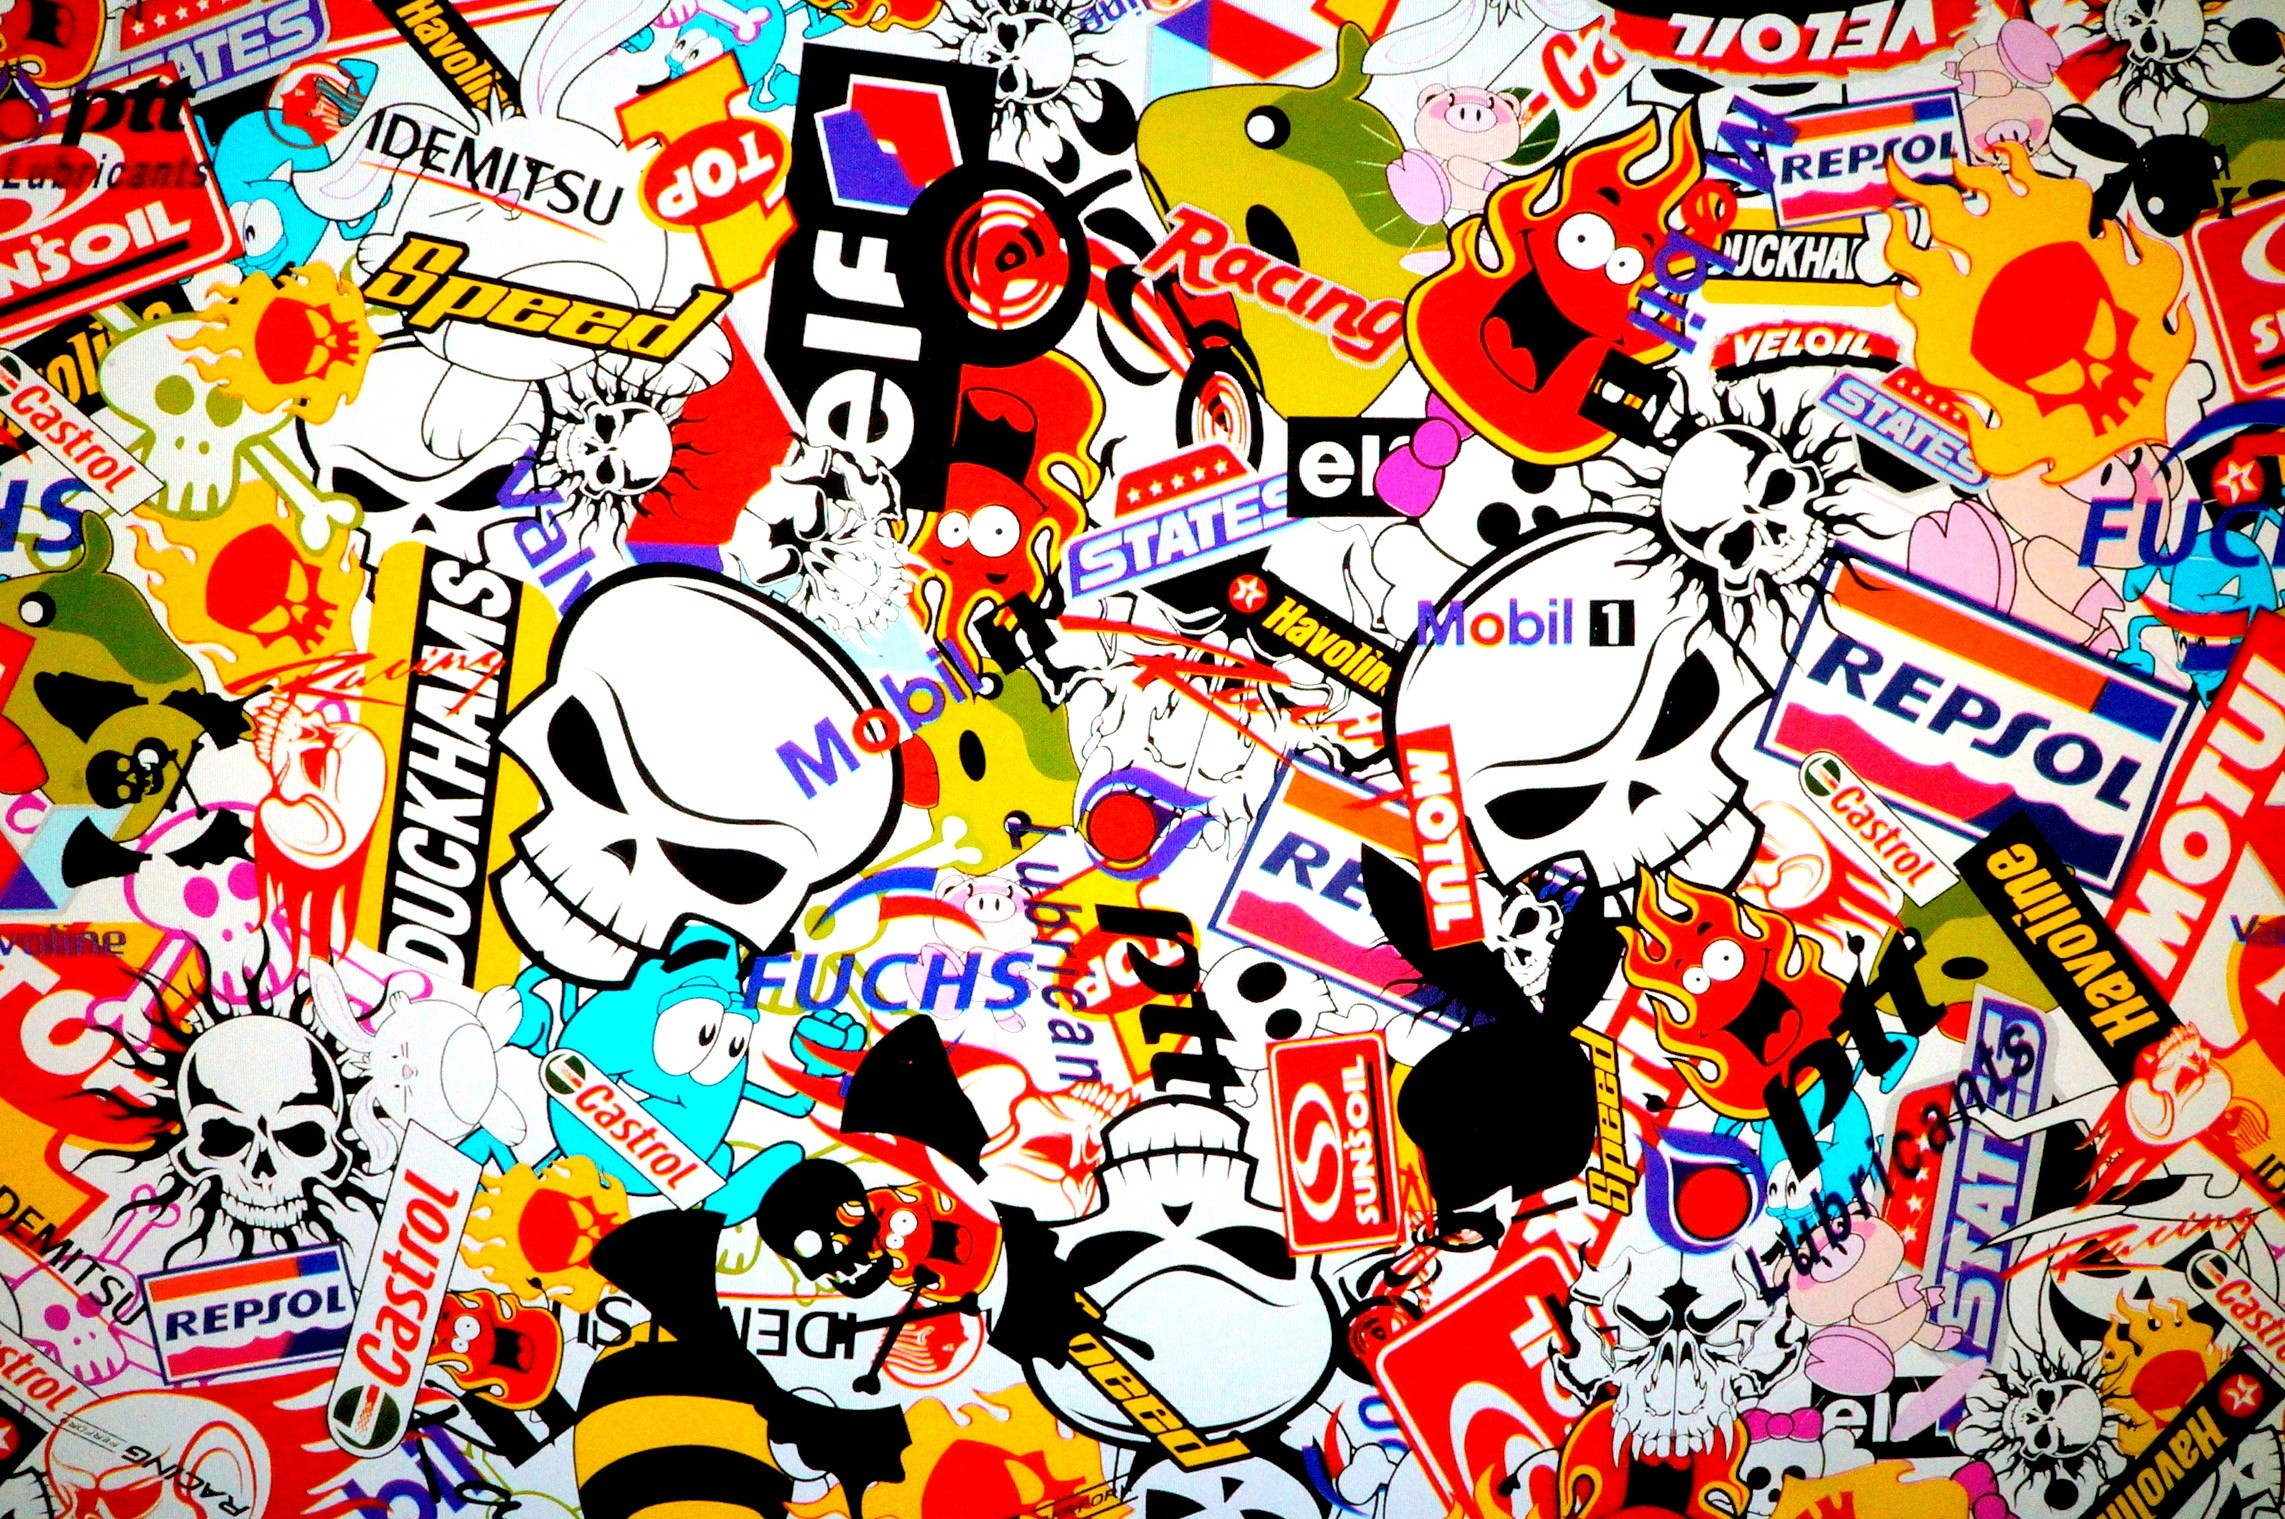 2285x1519 wallpaper images sticker bomb - sticker bomb category